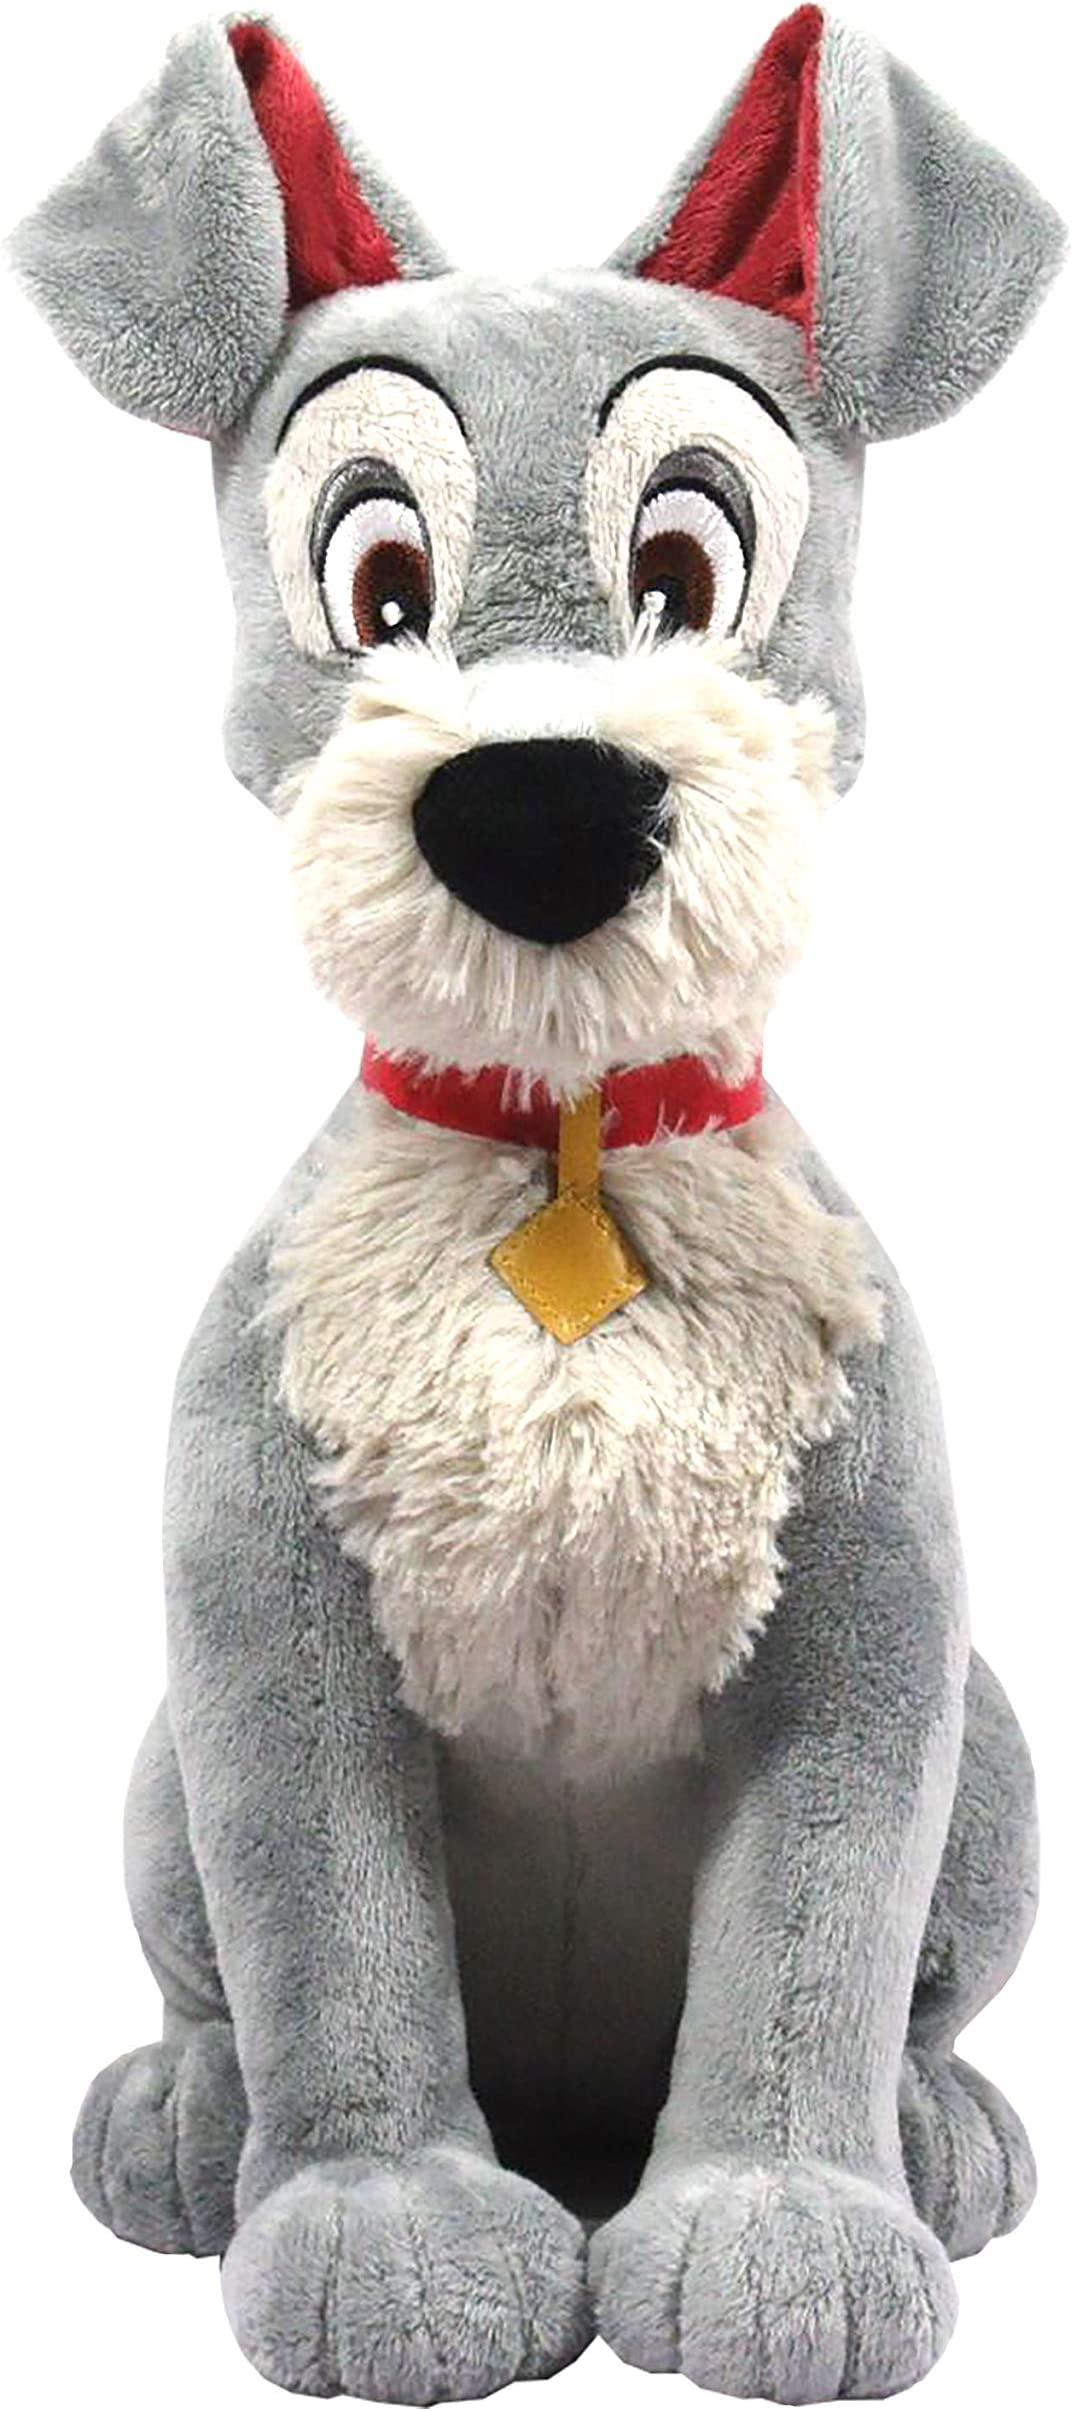 Disney Large Plush Tramp - Amazon Exclusive Multi-color, 13 inches